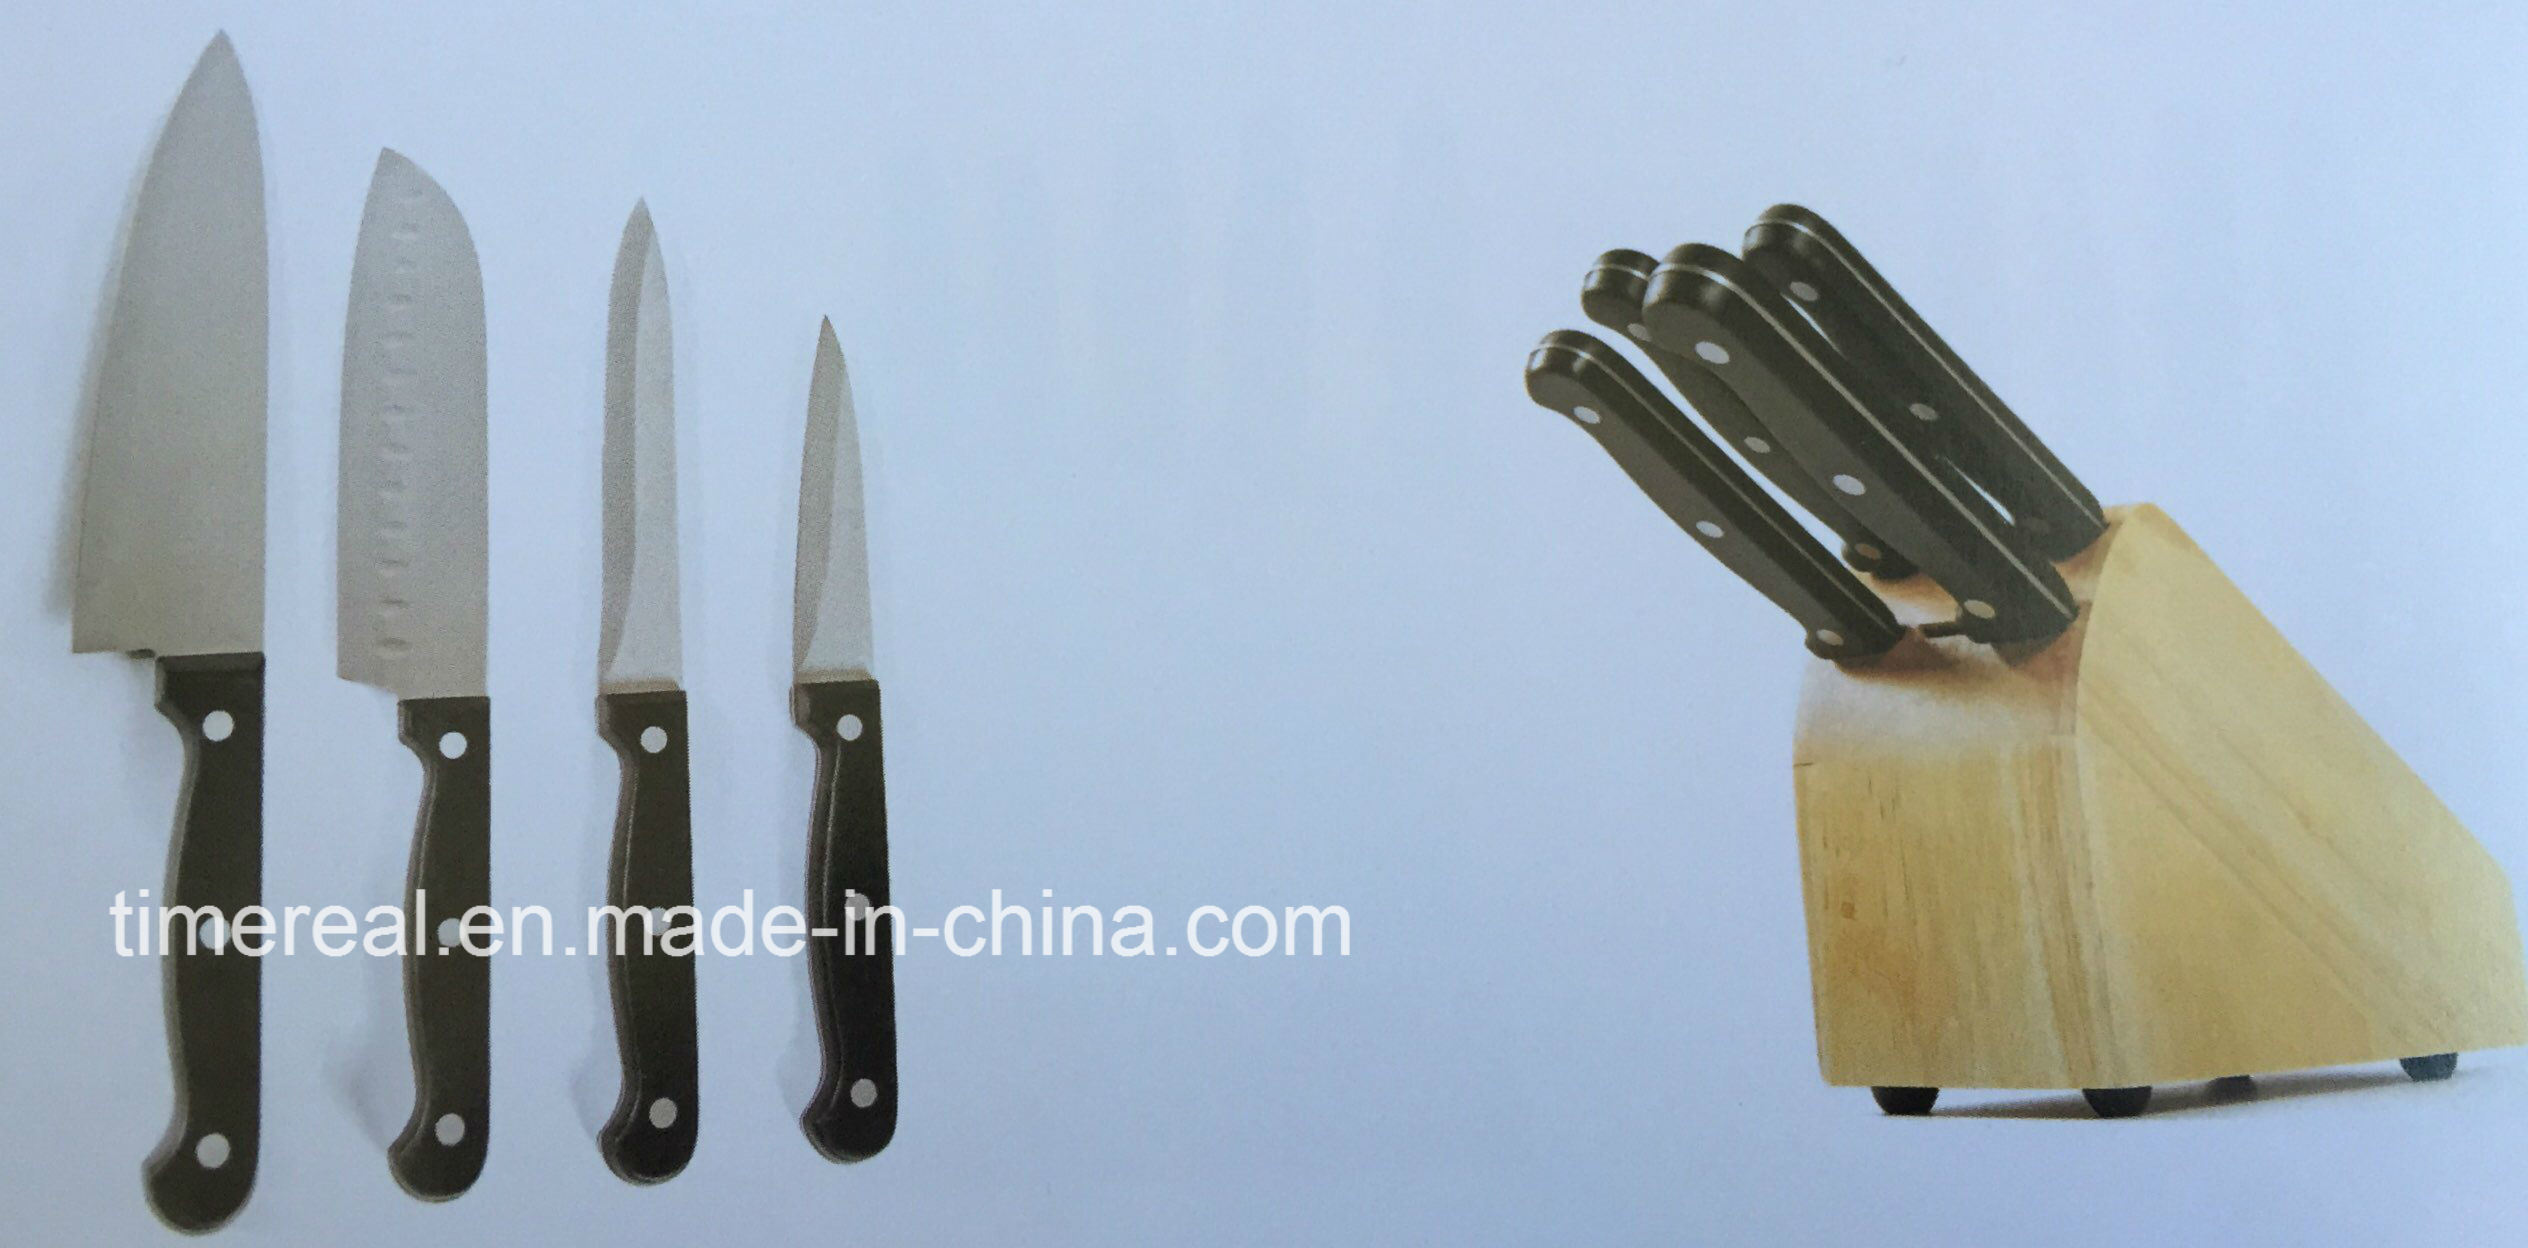 China Stainless Steel Kitchen Knives Set with Painting No. Fj-0052 ...